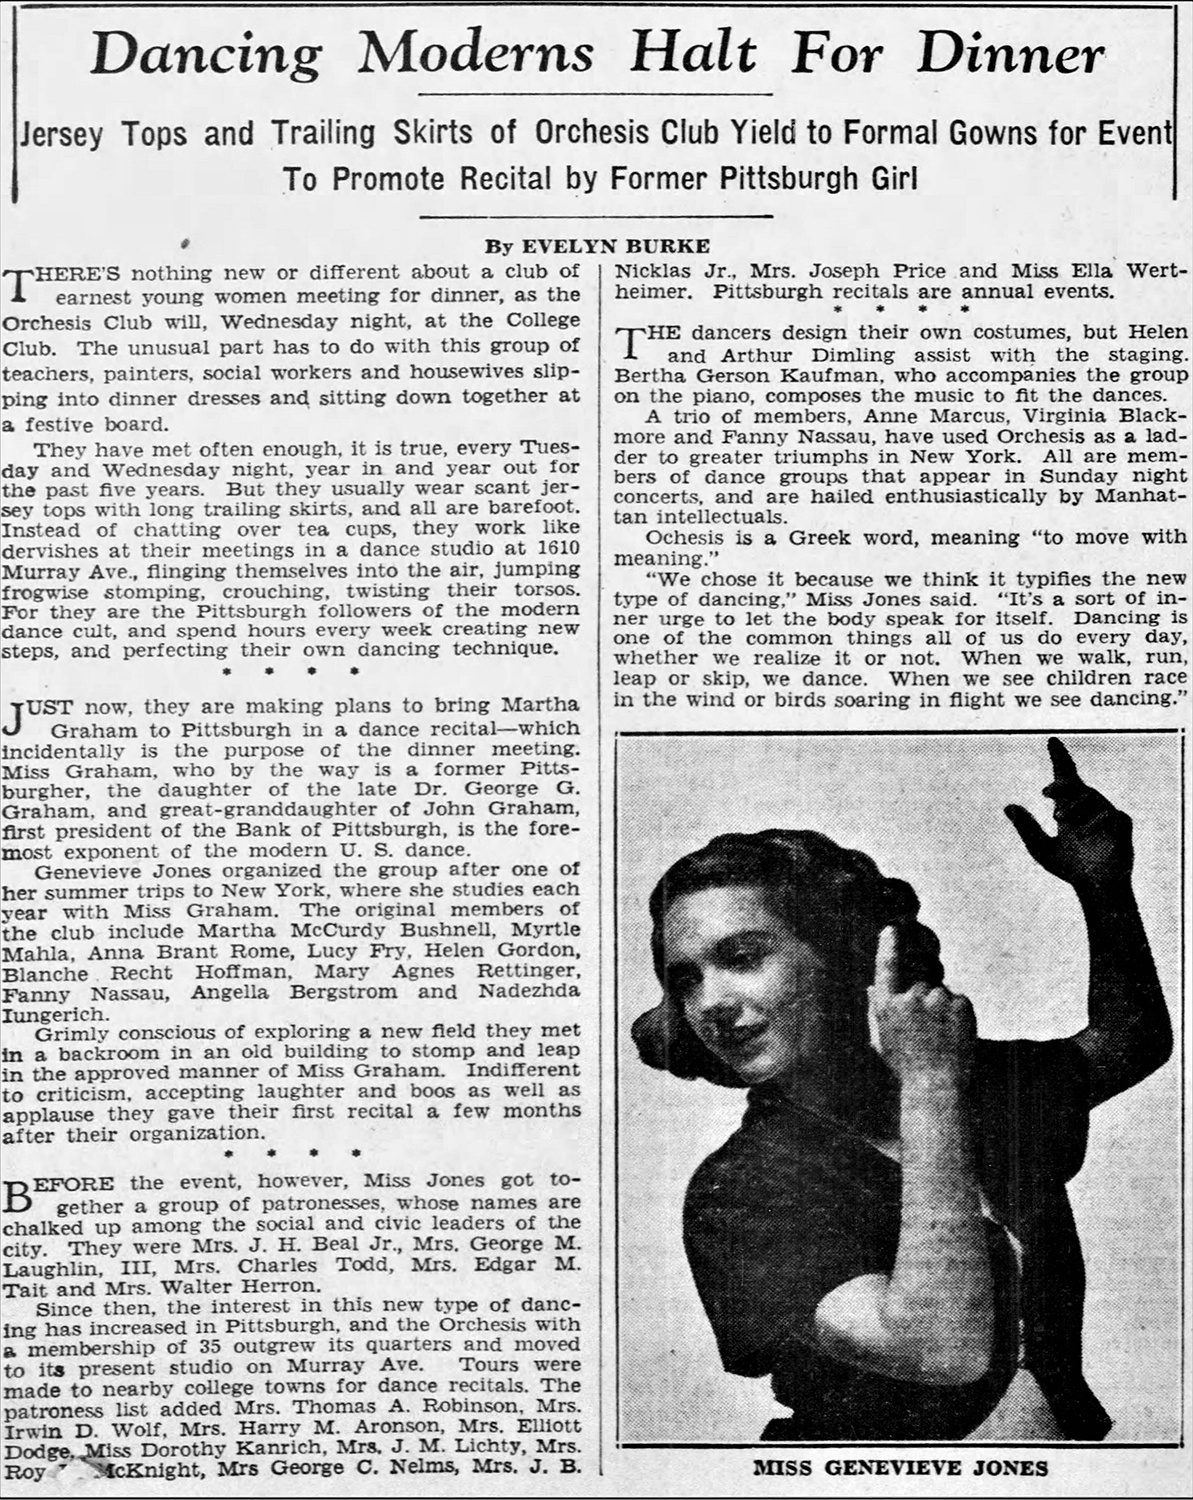 Press photo of Pittsburgh's Genevieve Jones, who became known as the woman who introduced Pittsburgh to modern dance. The Pittsburgh Press, October 11, 1936.